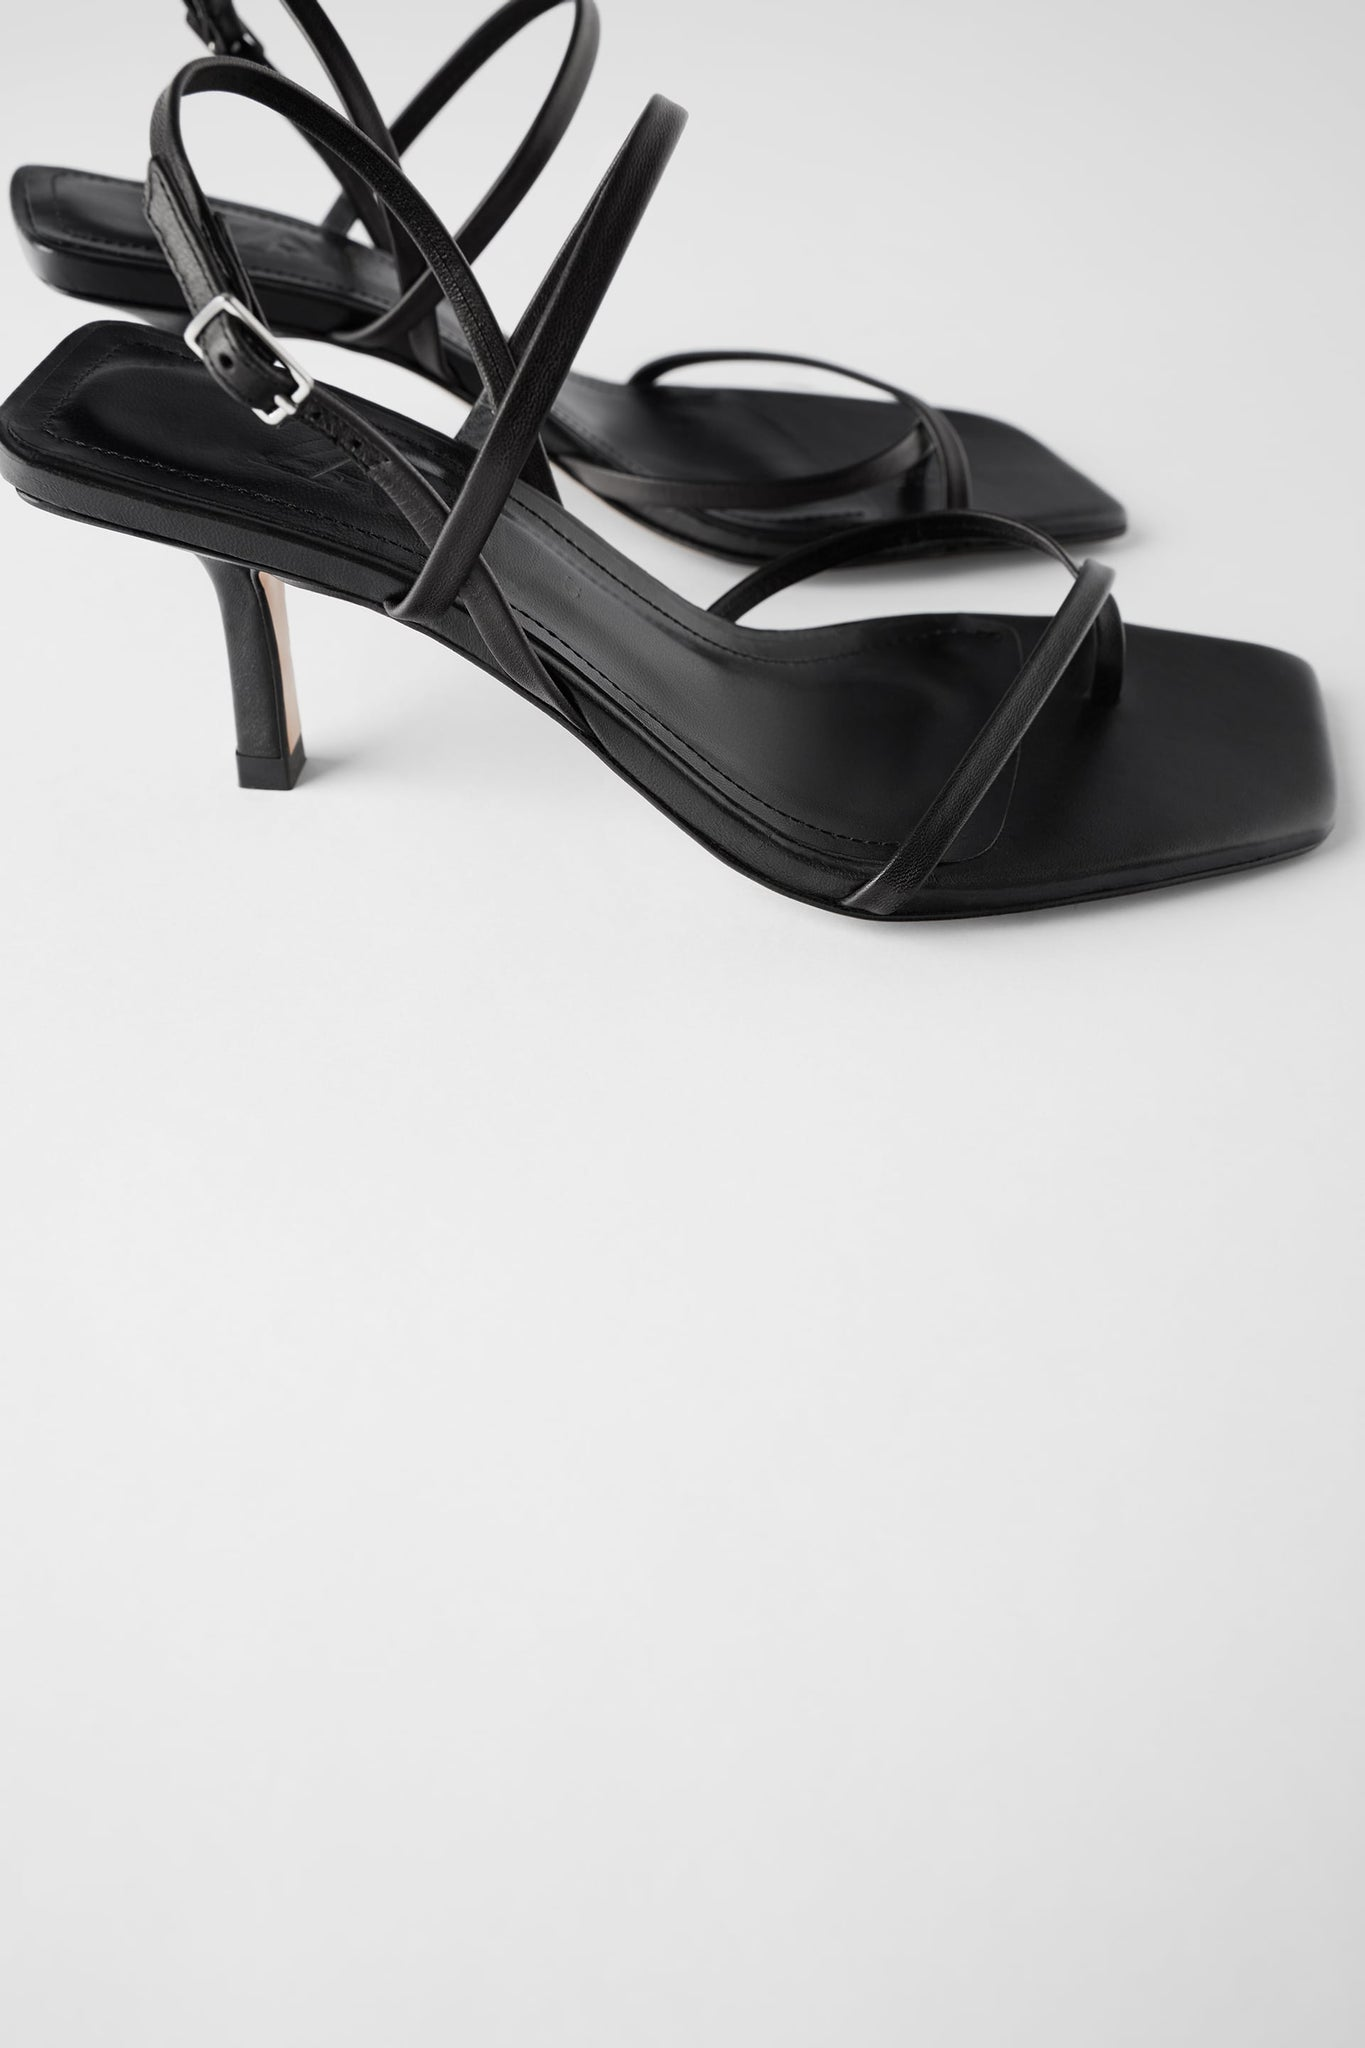 MID-HEEL STRAPPY LEATHER SANDALS - ZARA